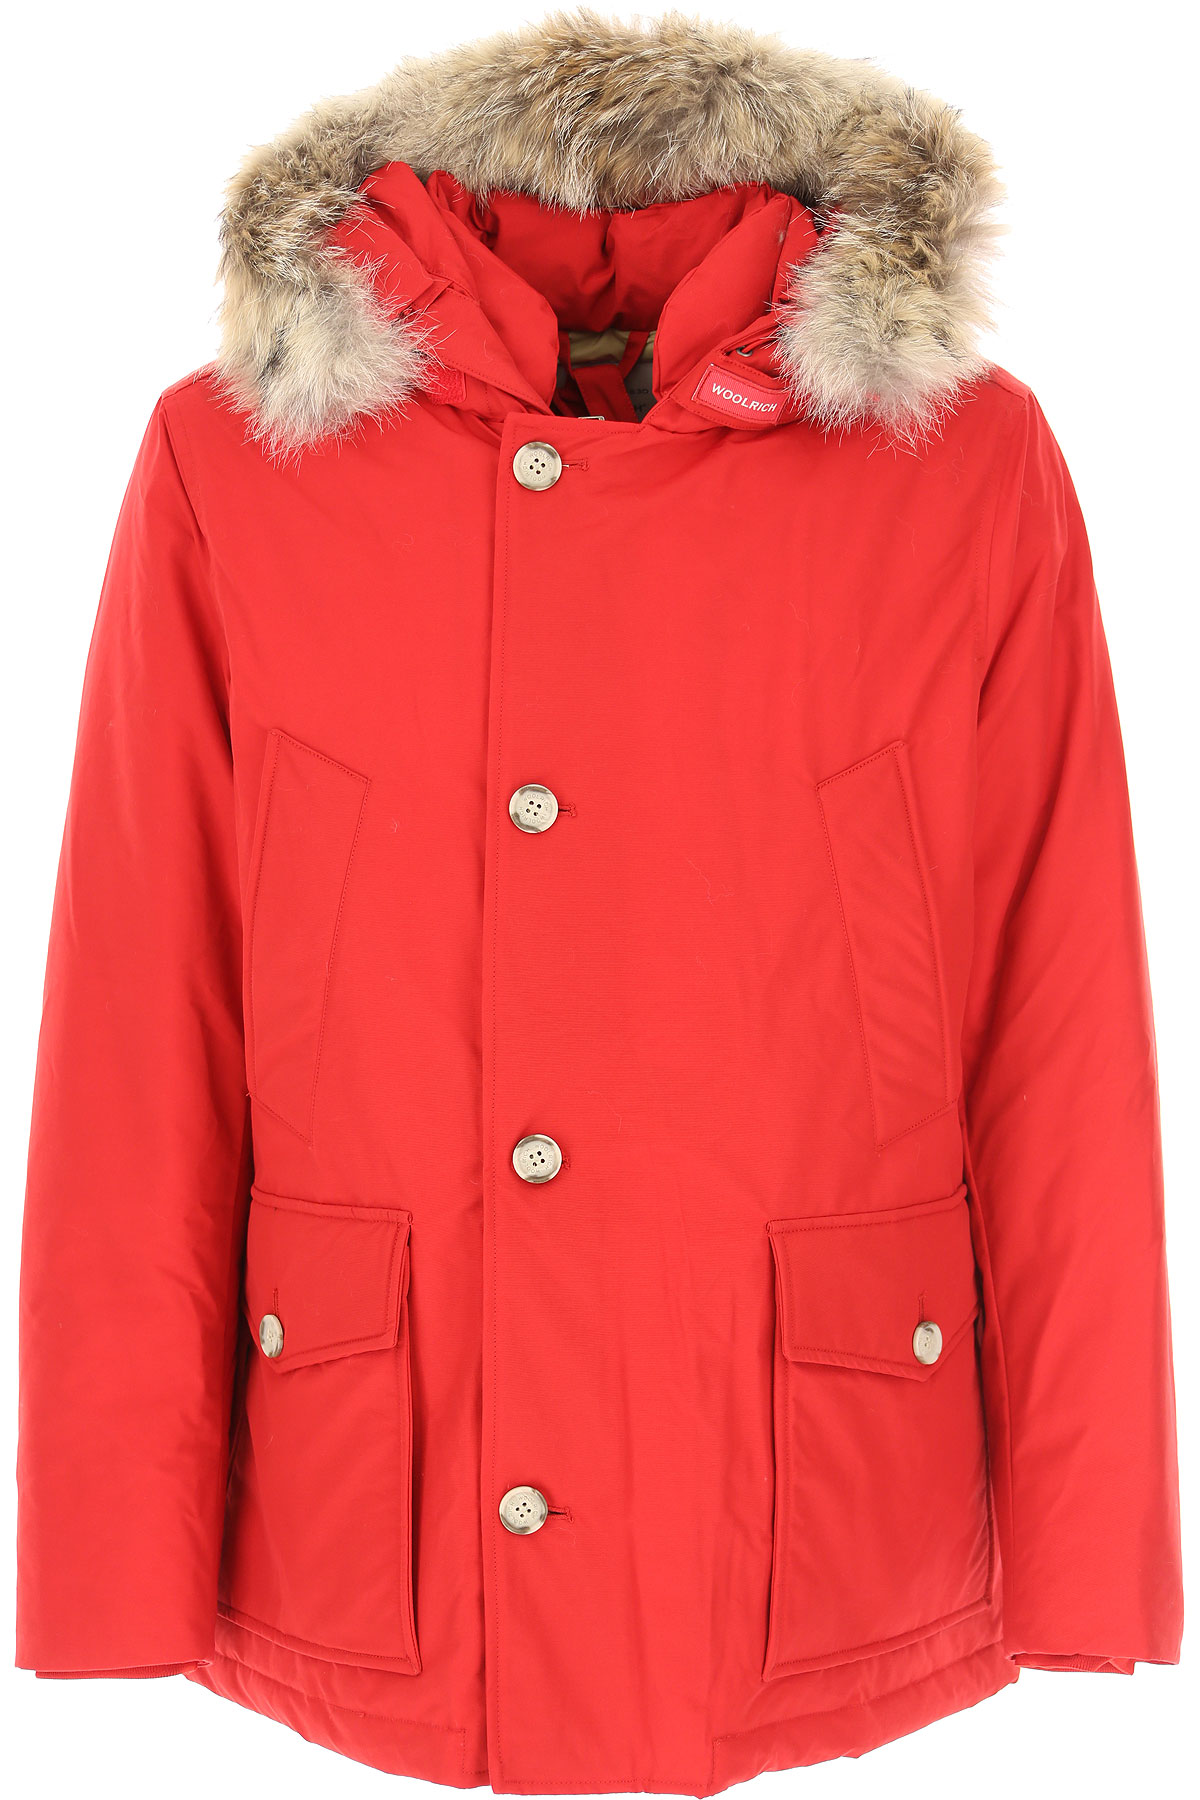 Woolrich Down Jacket for Men, Puffer Ski Jacket On Sale, Red, Duck Down, 2019, L S